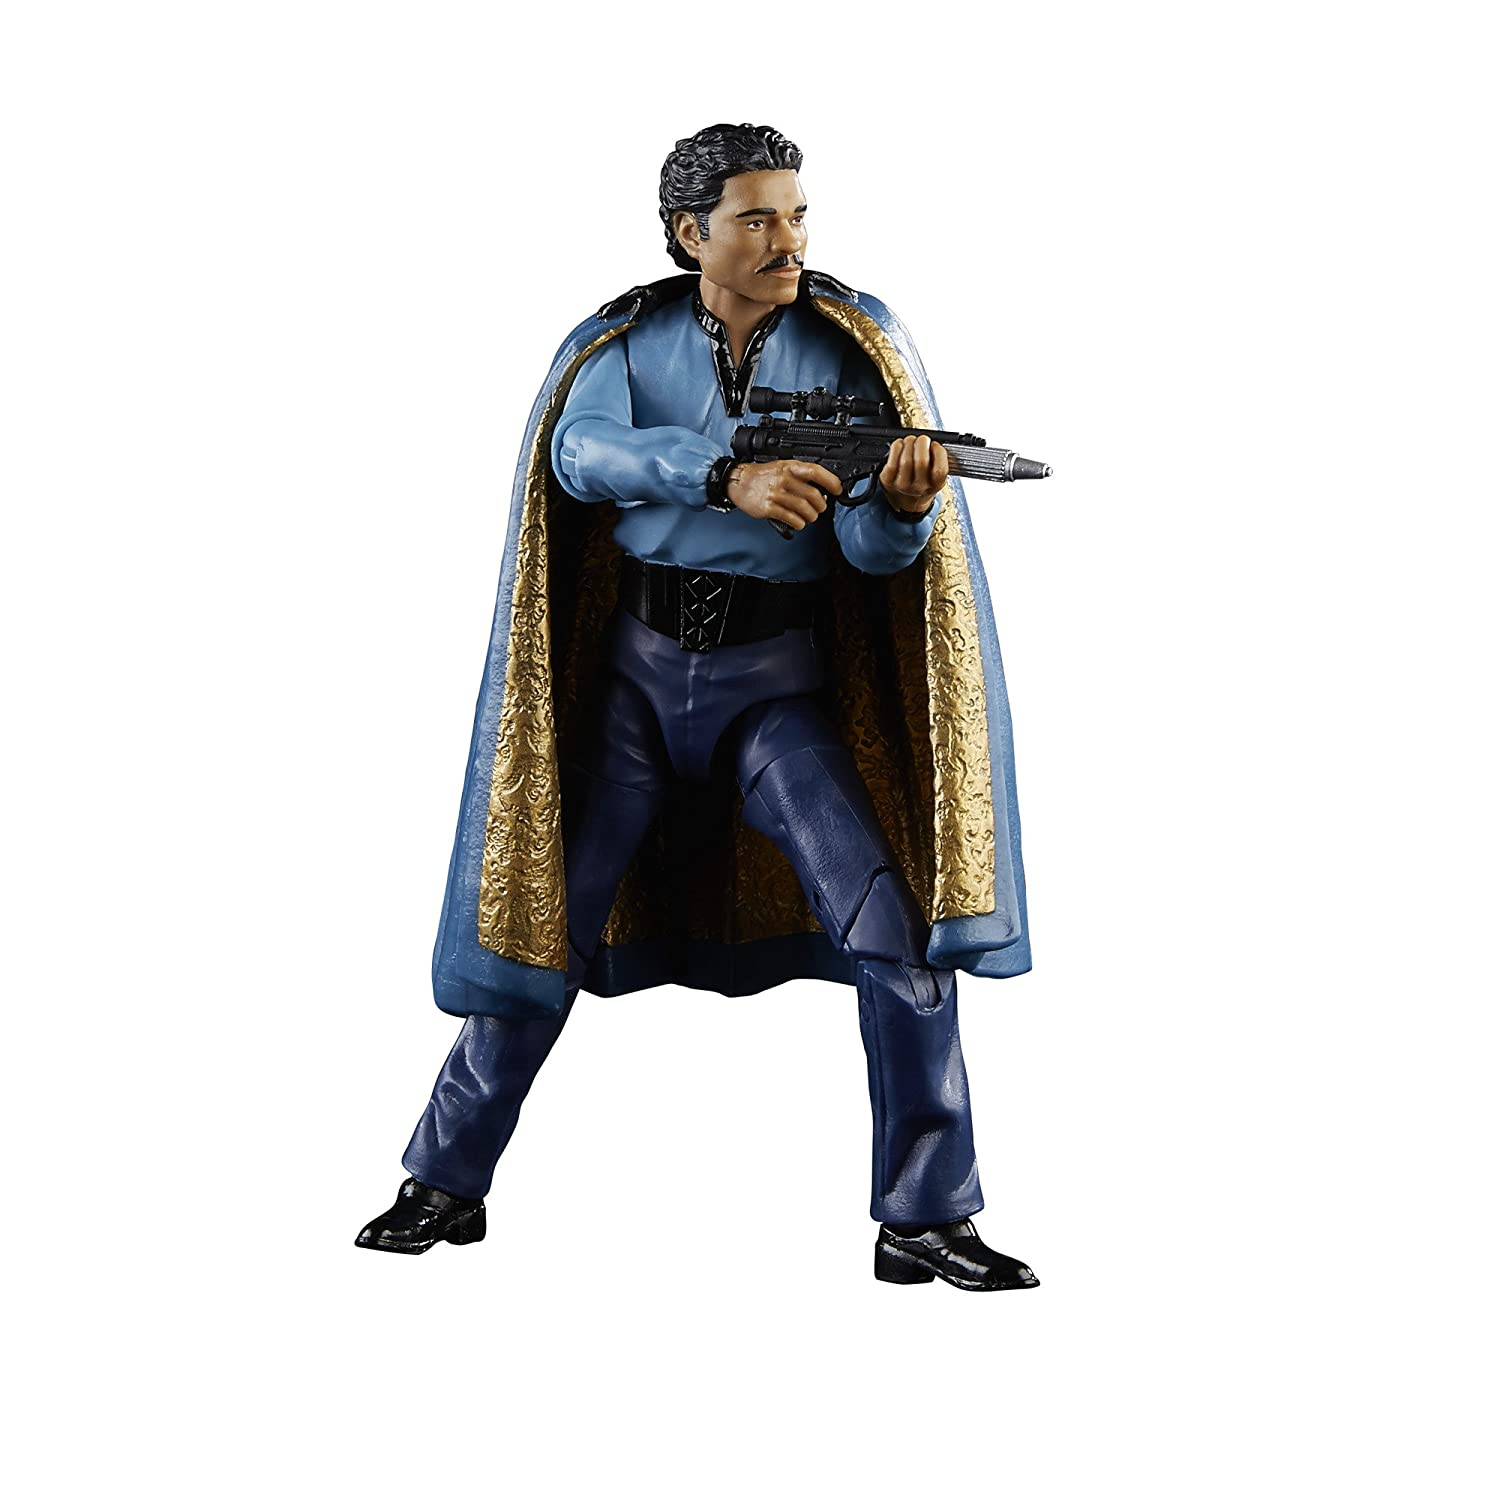 Star Wars E5 Lando Calrissian Figure Hasbro Canada Corporation C2140AS0